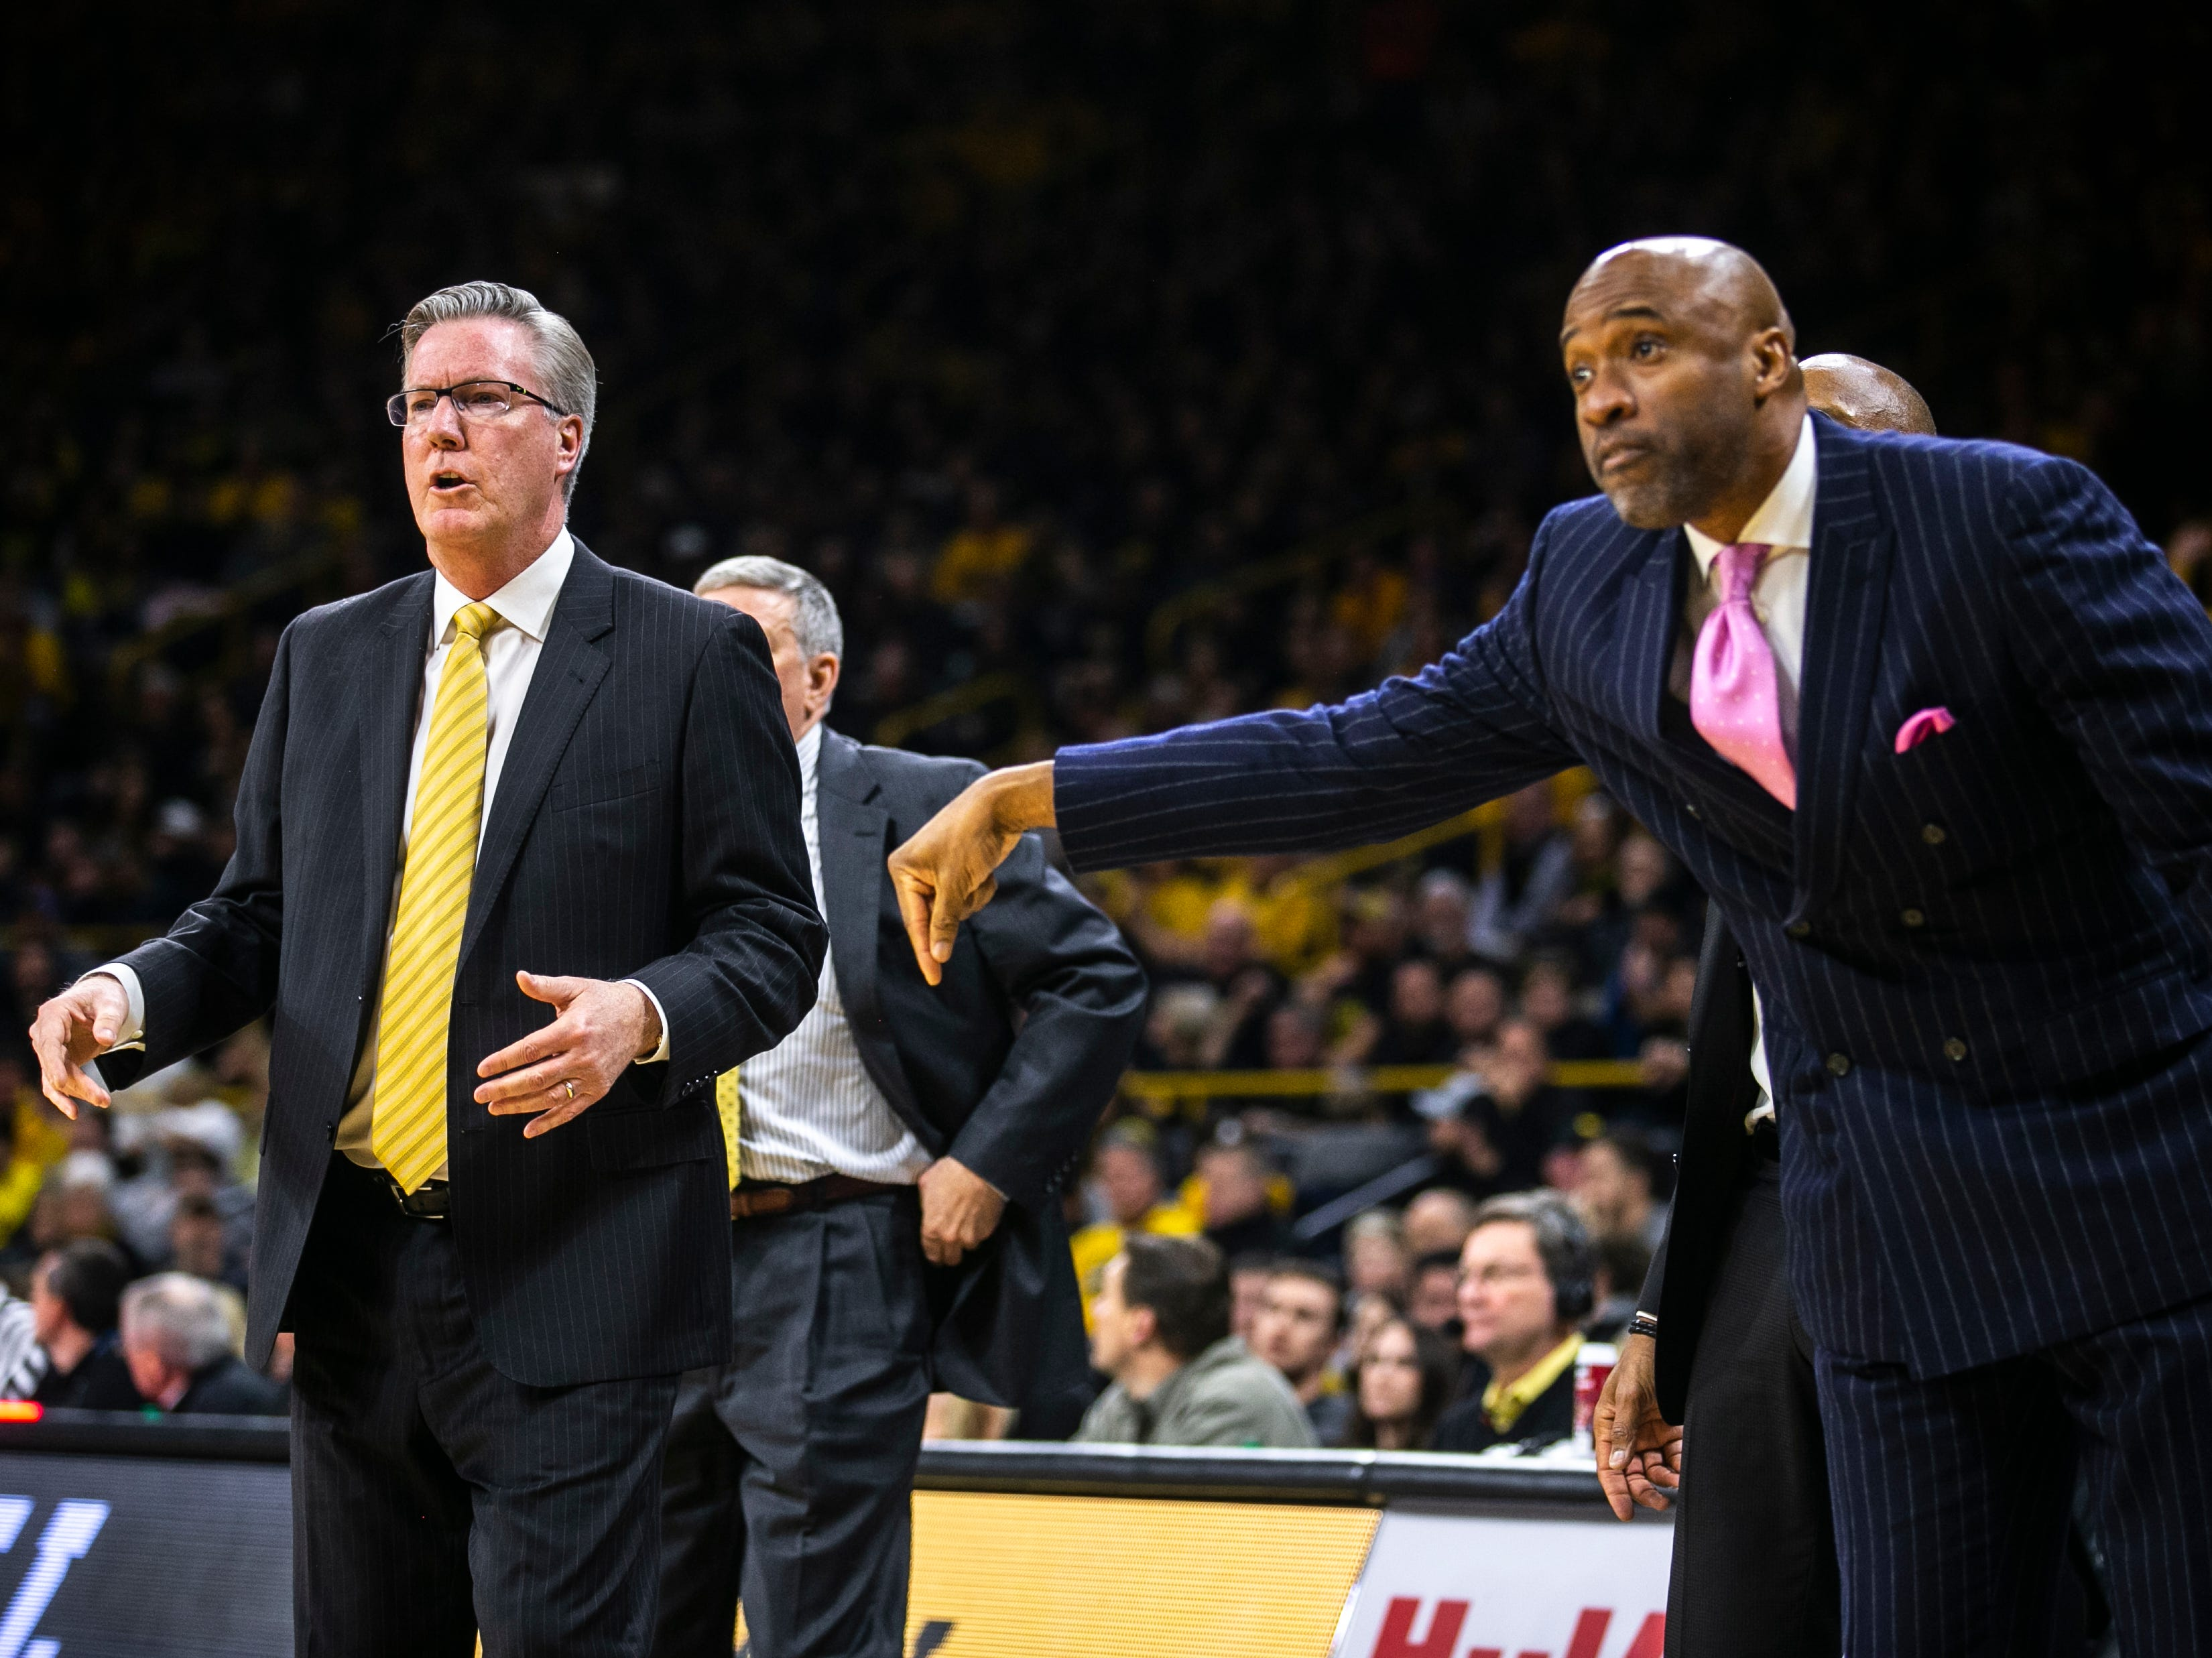 Iowa men's basketball head coach Fran McCaffery, left, and assistant Andrew Francis call out to players during a NCAA Big Ten Conference men's basketball game on Friday, Feb. 1, 2019, at Carver-Hawkeye Arena in Iowa City, Iowa.